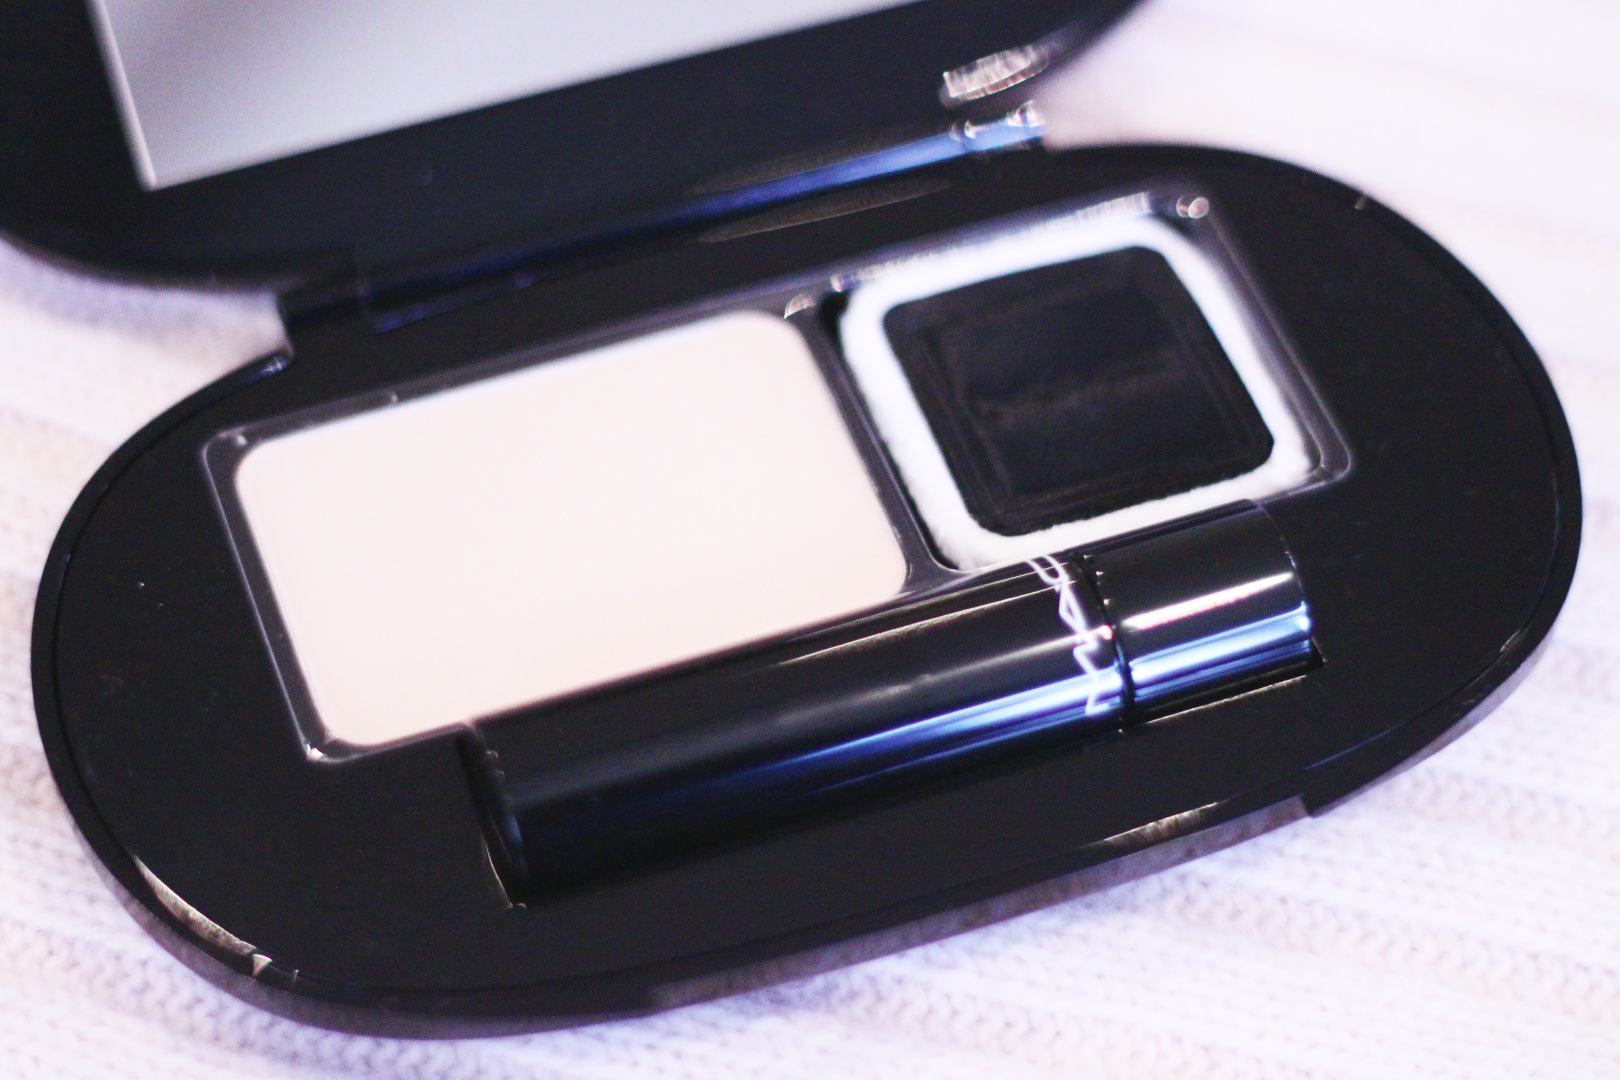 MAC All For Glamour Kit with pressed blotting powder, powder puff and lipstick in Fashion City.